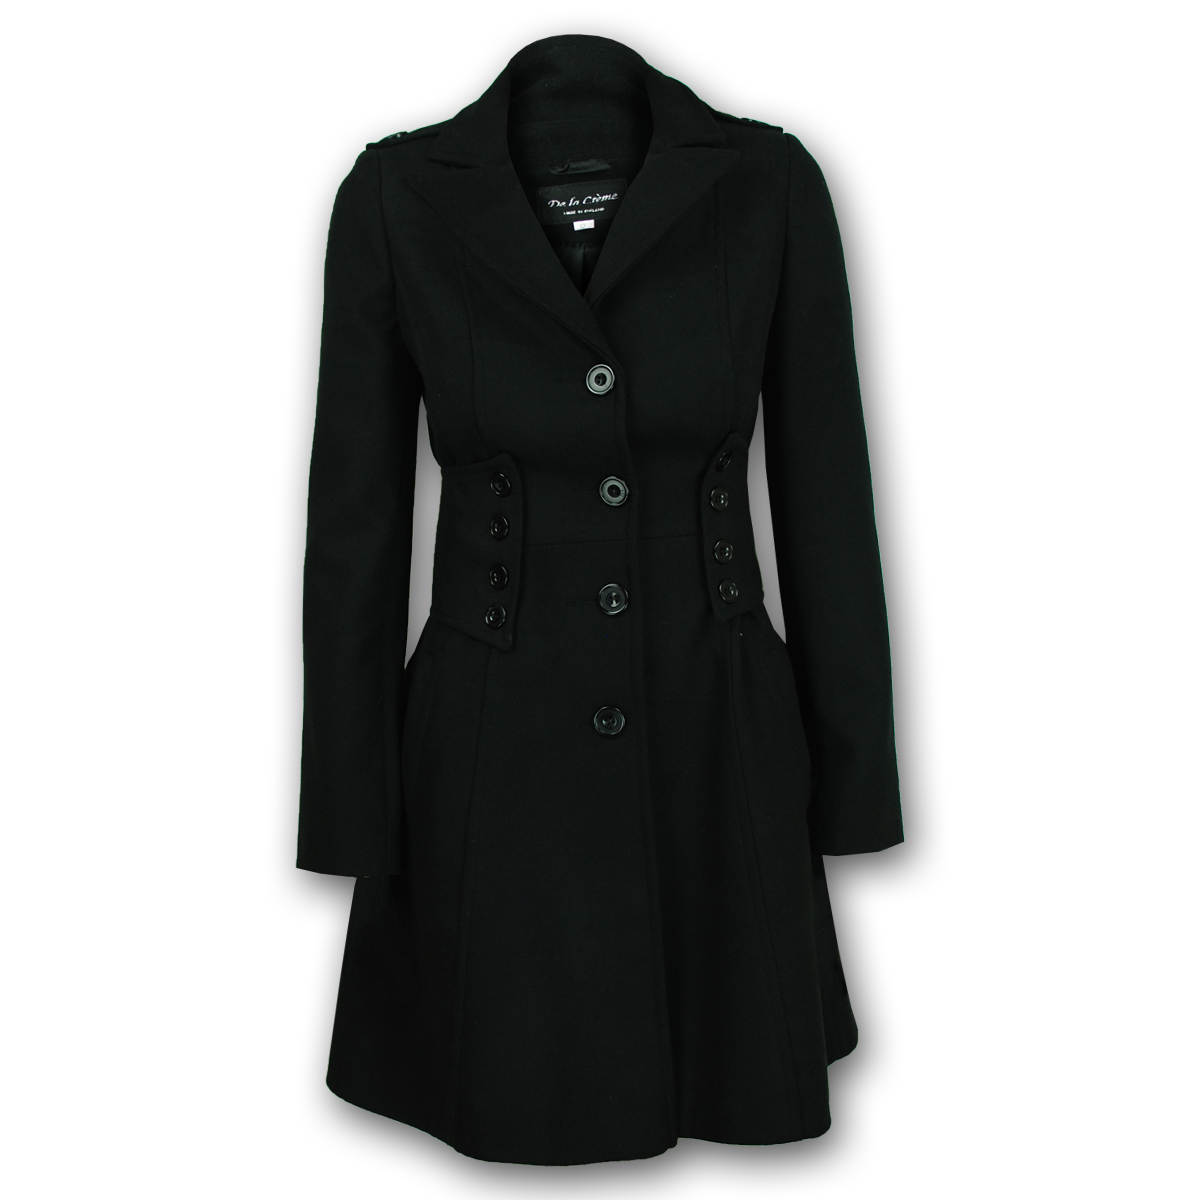 Best prices on Womens military style coat in Women's Jackets & Coats online. Visit Bizrate to find the best deals on top brands. Read reviews on Clothing & Accessories merchants and buy with confidence.